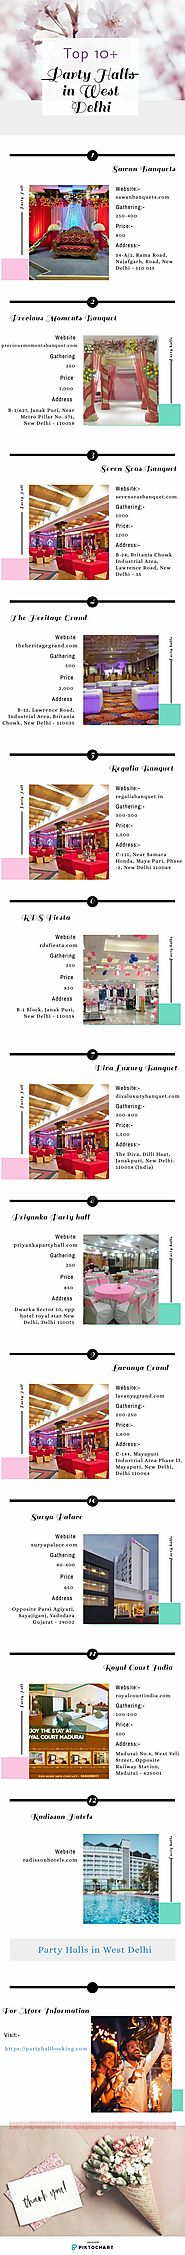 Top 10 Party Halls in West Delhi | Piktochart Visual Editor